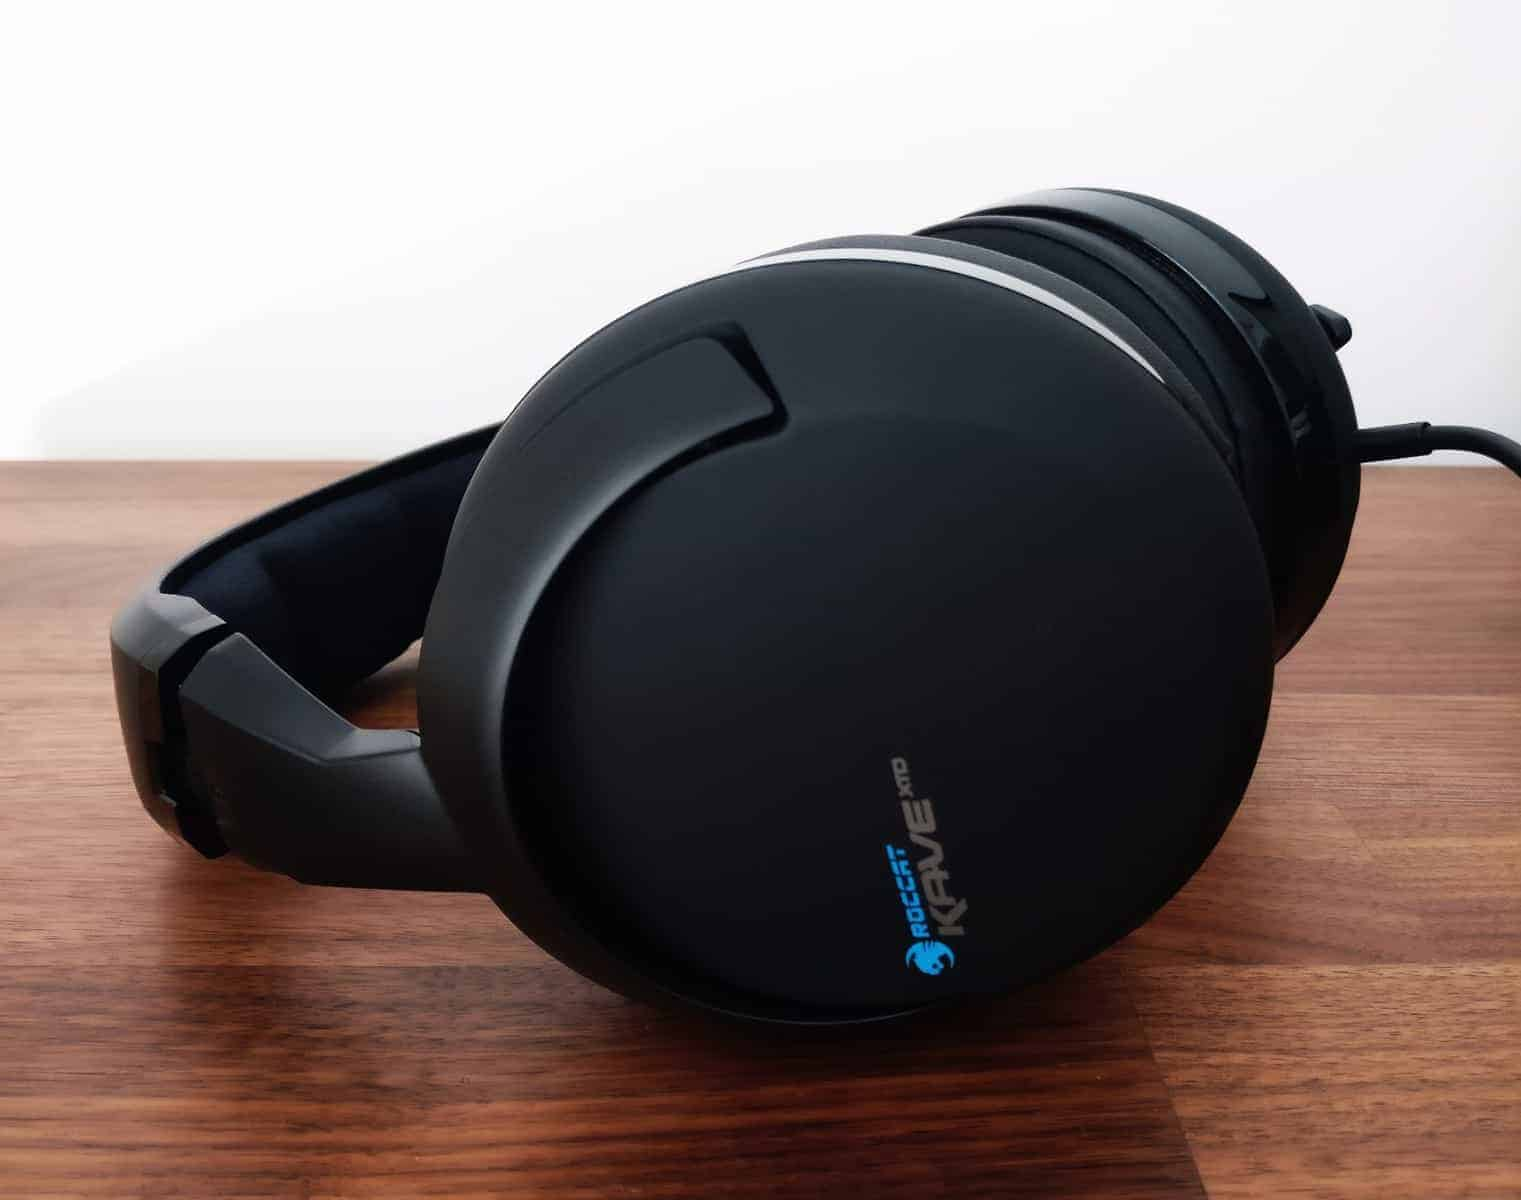 roccat-kave-photos14 Roccat Kave XTD 5.1 Digital Gaming Headset Review